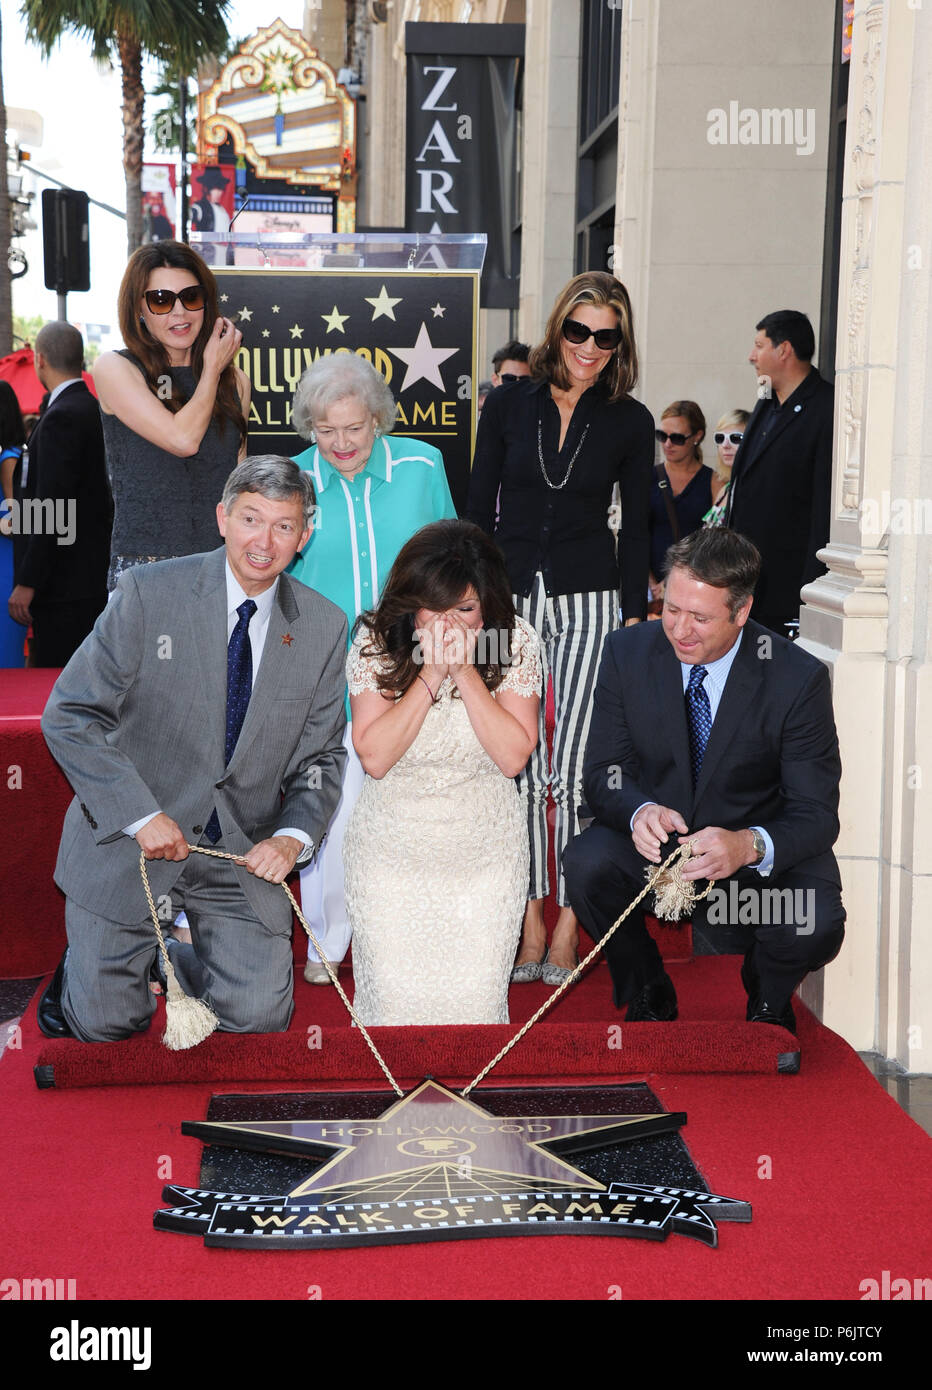 Valerie Bertinelli Betty White Jane Leeves Wendy Malick Honored With A Star On The Hollywood Walk Of Fame In Los Angeles Valerie Bertinelli Betty White Jane Leeves Wendy Malick 22 Event